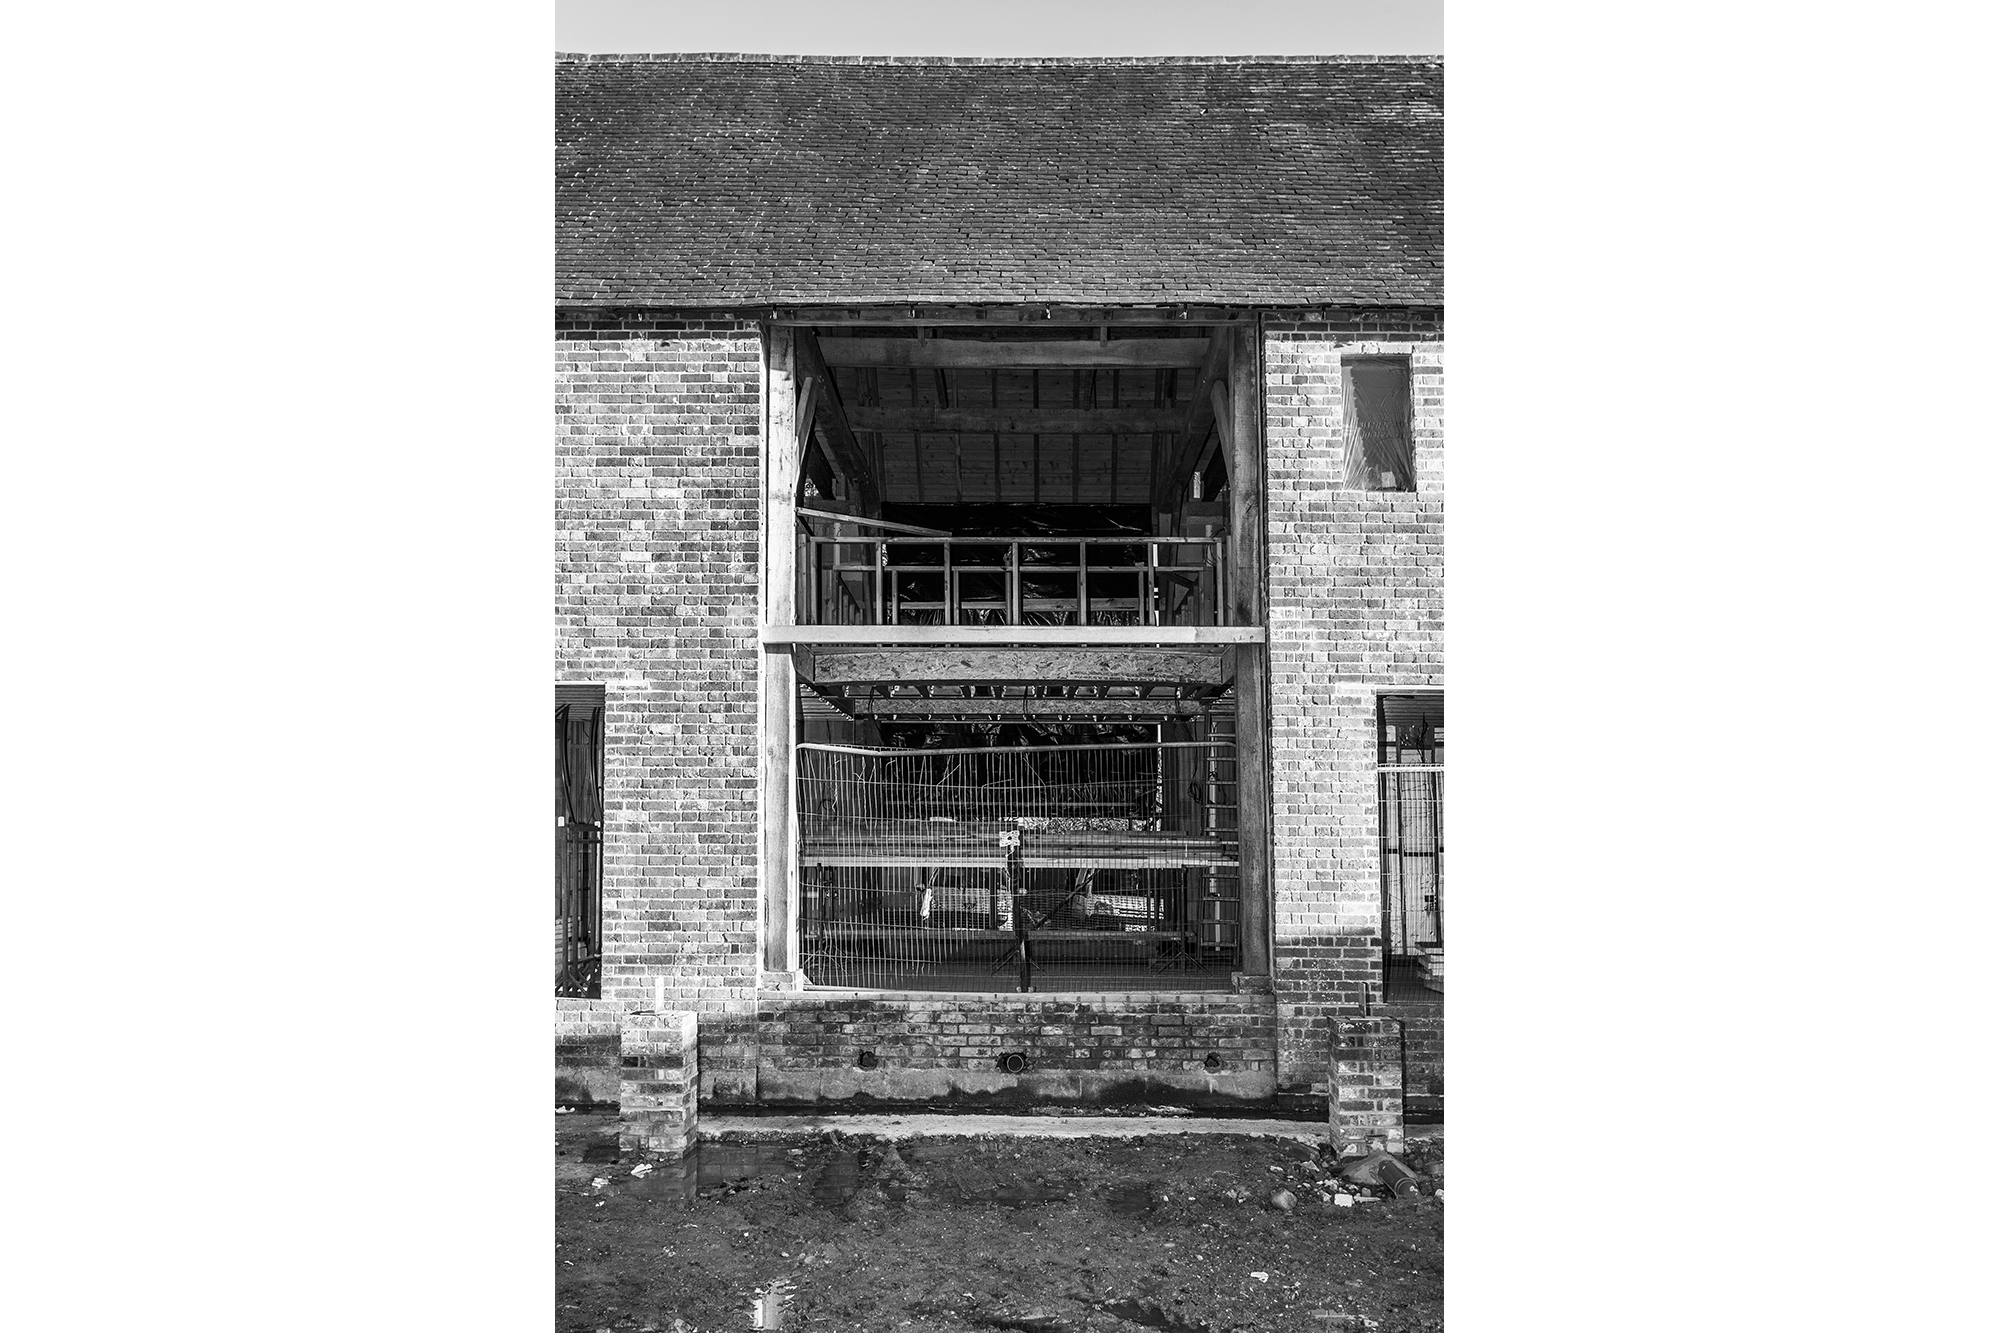 GatehouseBarn_Construction_29.jpg